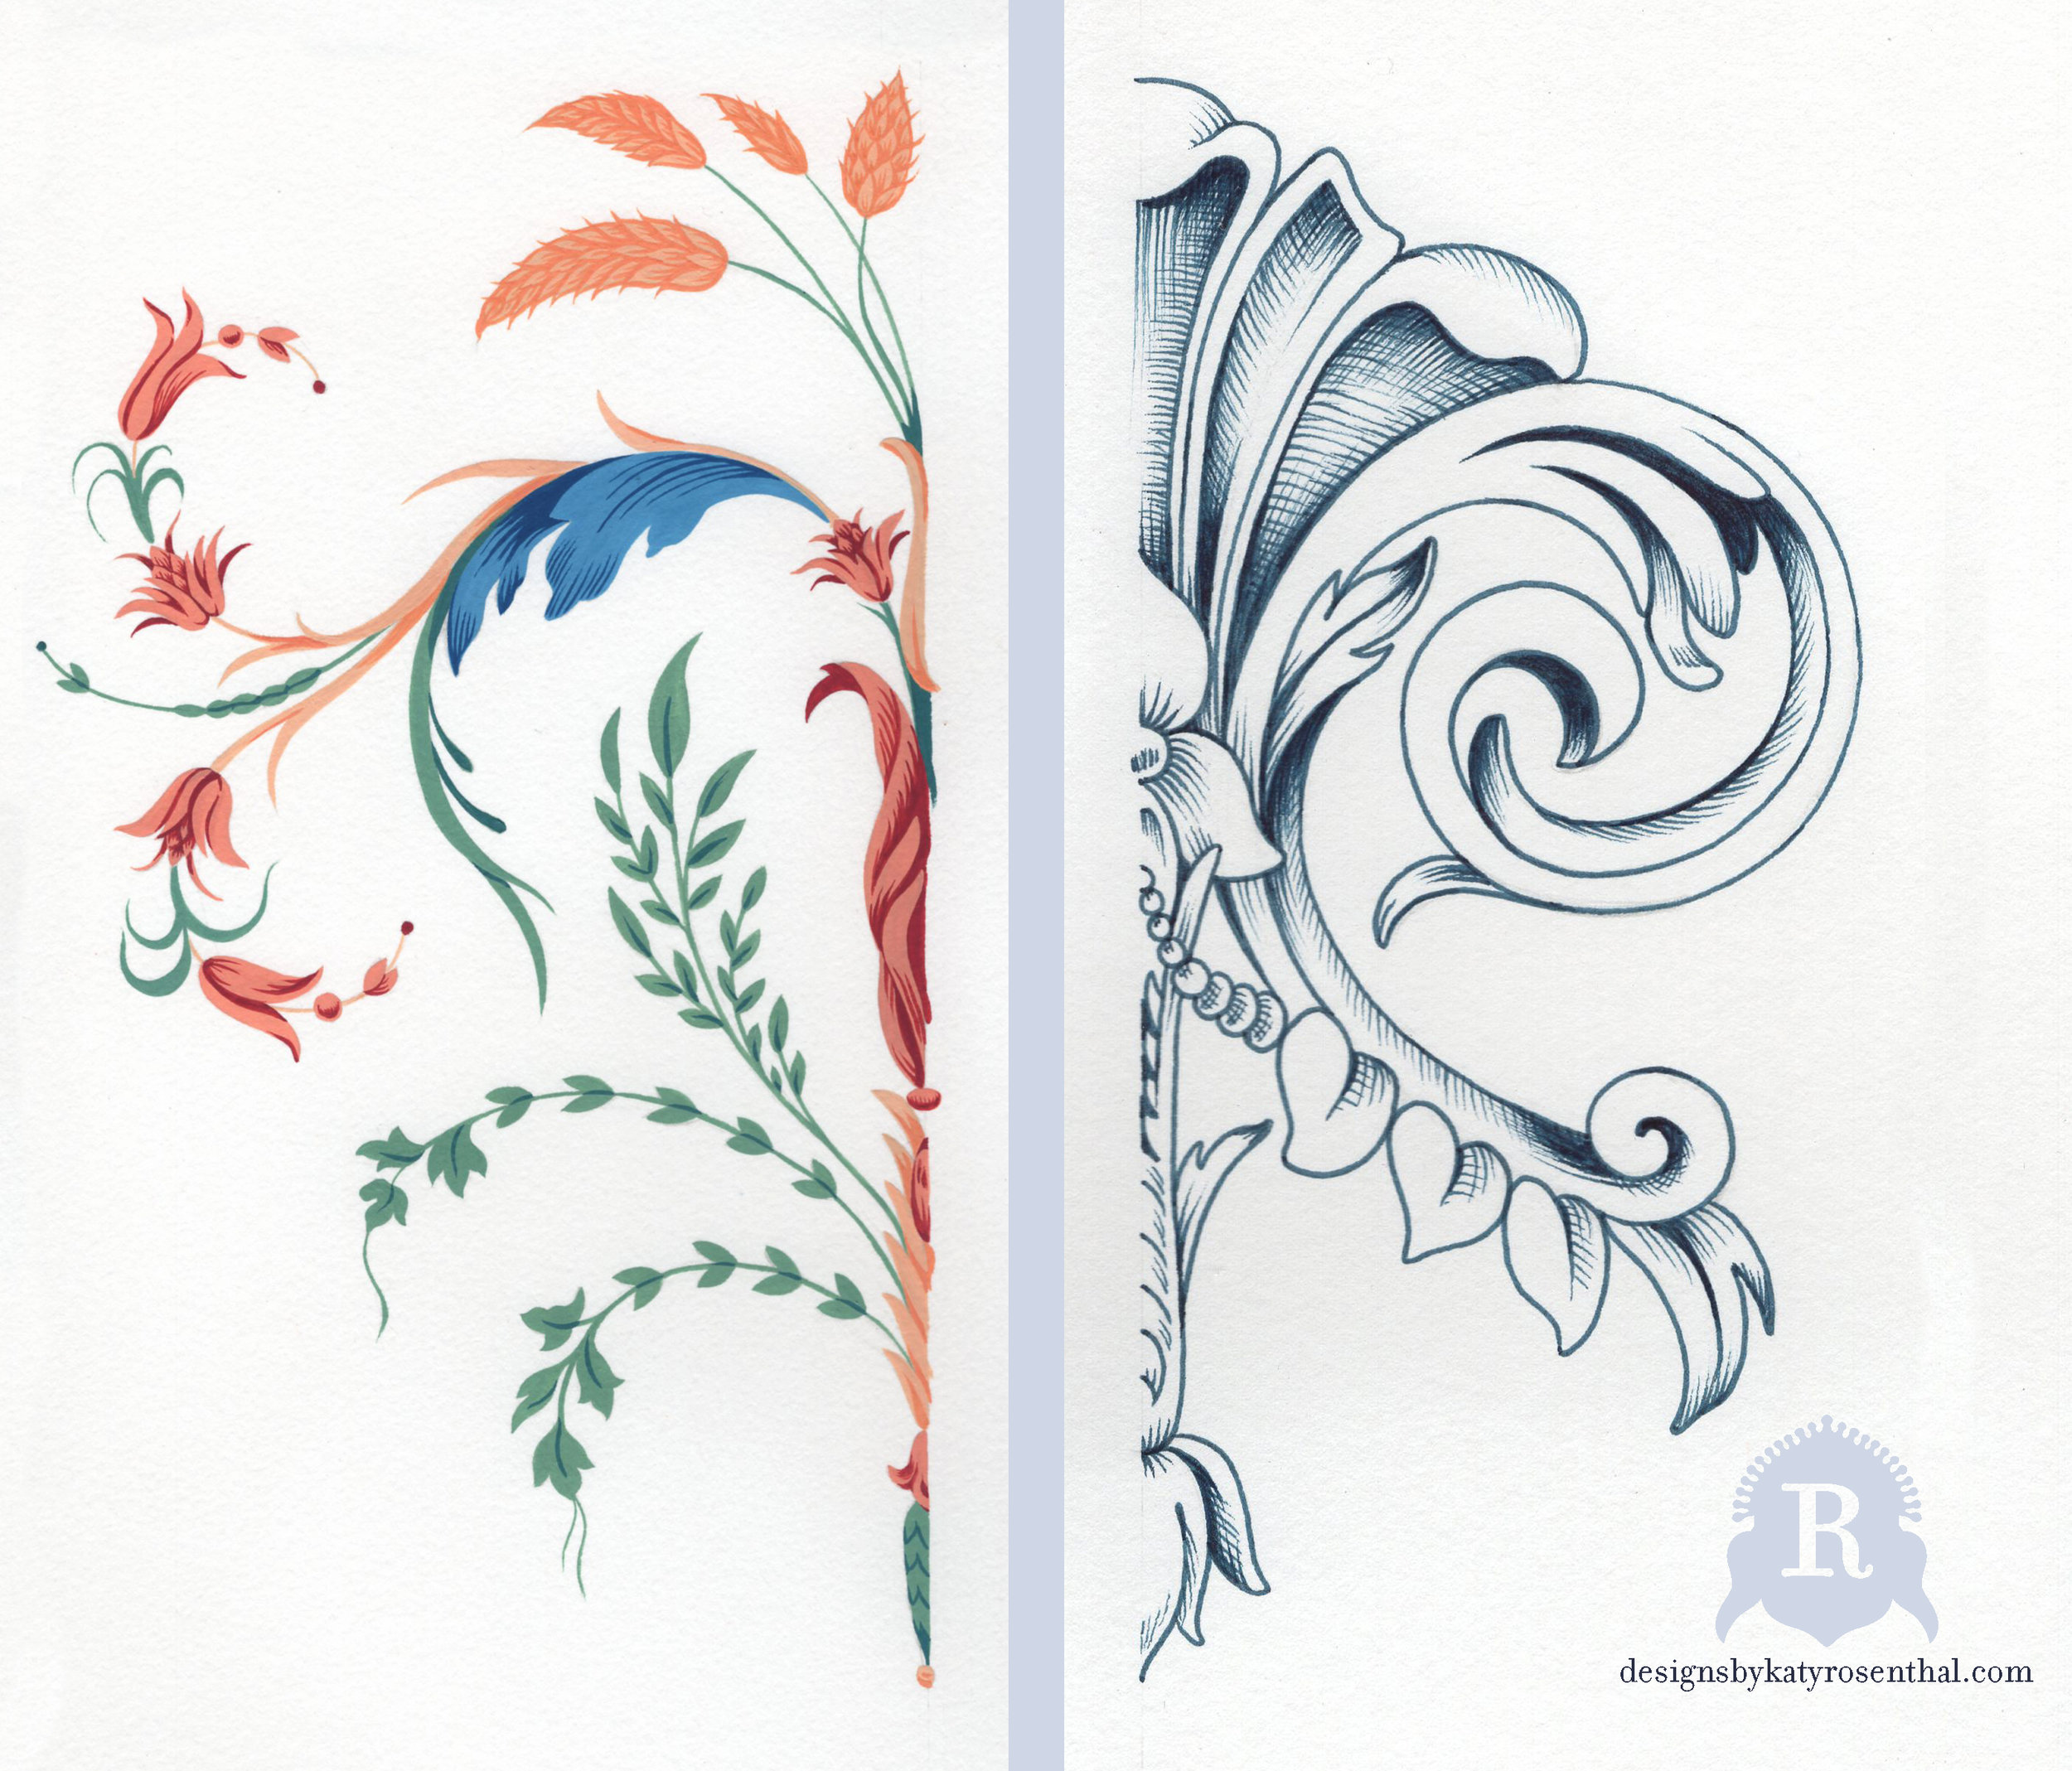 Original motifs I created for the 'Compass Rose' scarf design. As both elements were intended to be symmetrical, I rendered them in halves and mirrored them on Photoshop. On left, a multi-colored decorative element drawn from the Regency style. On right, a more generally Neoclassical design inspired by three-dimensional architectural embellishments.